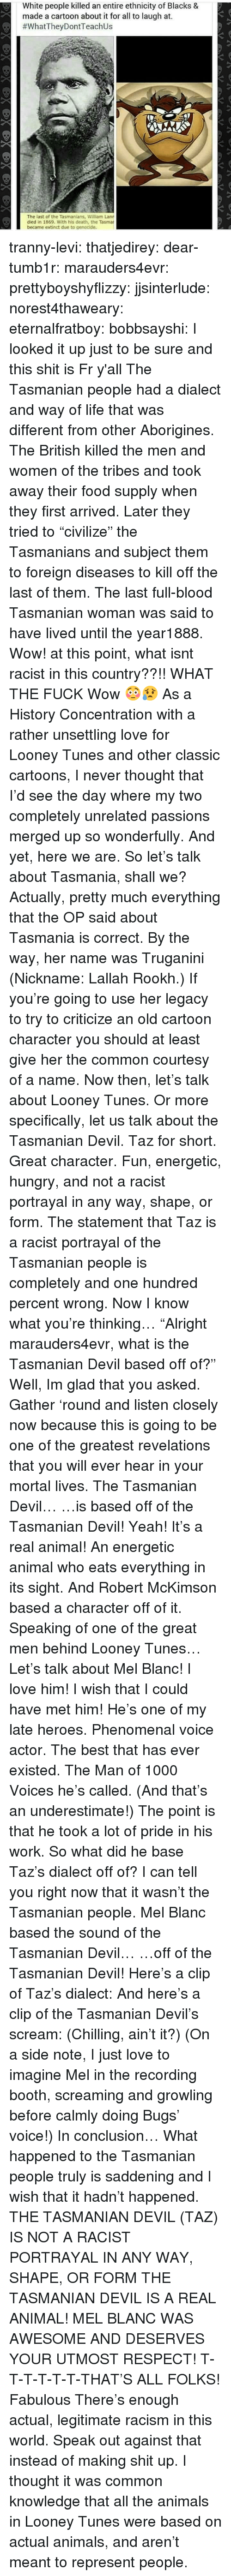 "Animals, Food, and Gif: White people killed an entire ethnicity of Blacks &  made a cartoon about it for all to laugh at.  #whatTheyDontTeach Us  The last of the Tasmanians, William Lanr  died in 1869. With his death, the Tasma  became extinct due to genocide. tranny-levi: thatjedirey:   dear-tumb1r:  marauders4evr:  prettyboyshyflizzy:  jjsinterlude:  norest4thaweary:  eternalfratboy:  bobbsayshi:  I looked it up just to be sure and this shit is Fr y'all The Tasmanian people had a dialect and way of life that was different from other Aborigines. The British killed the men and women of the tribes and took away their food supply when they first arrived. Later they tried to ""civilize"" the Tasmanians and subject them to foreign diseases to kill off the last of them. The last full-blood Tasmanian woman was said to have lived until the year1888.  Wow!  at this point, what isnt racist in this country??!!  WHAT THE FUCK  Wow 😳😥   As a History Concentration with a rather unsettling love for Looney Tunes and other classic cartoons, I never thought that I'd see the day where my two completely unrelated passions merged up so wonderfully. And yet, here we are. So let's talk about Tasmania, shall we? Actually, pretty much everything that the OP said about Tasmania is correct. By the way, her name was Truganini (Nickname:   Lallah Rookh.) If you're going to use her legacy to try to criticize an old cartoon character you should at least give her the common courtesy of a name. Now then, let's talk about Looney Tunes. Or more specifically, let us talk about the Tasmanian Devil. Taz for short. Great character. Fun, energetic, hungry, and not a racist portrayal in any way, shape, or form. The statement that Taz is a racist portrayal of the Tasmanian people is completely and one hundred percent wrong. Now I know what you're thinking… ""Alright marauders4evr, what is the Tasmanian Devil based off of?"" Well, Im glad that you asked. Gather 'round and listen closely now because this is going to be one of the greatest revelations that you will ever hear in your mortal lives. The Tasmanian Devil… …is based off of the Tasmanian Devil! Yeah! It's a real animal! An energetic animal who eats everything in its sight. And Robert McKimson based a character off of it. Speaking of one of the great men behind Looney Tunes… Let's talk about Mel Blanc! I love him! I wish that I could have met him! He's one of my late heroes. Phenomenal voice actor. The best that has ever existed. The Man of 1000 Voices he's called. (And that's an underestimate!) The point is that he took a lot of pride in his work. So what did he base Taz's dialect off of? I can tell you right now that it wasn't the Tasmanian people. Mel Blanc based the sound of the Tasmanian Devil… …off of the Tasmanian Devil! Here's a clip of Taz's dialect: And here's a clip of the Tasmanian Devil's scream: (Chilling, ain't it?) (On a side note, I just love to imagine Mel in the recording booth, screaming and growling before calmly doing Bugs' voice!) In conclusion… What happened to the Tasmanian people truly is saddening and I wish that it hadn't happened. THE TASMANIAN DEVIL (TAZ) IS NOT A RACIST PORTRAYAL IN ANY WAY, SHAPE, OR FORM THE TASMANIAN DEVIL IS A REAL ANIMAL! MEL BLANC WAS AWESOME AND DESERVES YOUR UTMOST RESPECT! T-T-T-T-T-T-THAT'S ALL FOLKS!  Fabulous   There's enough actual, legitimate racism in this world. Speak out against that instead of making shit up.    I thought it was common knowledge that all the animals in Looney Tunes were based on actual animals, and aren't meant to represent people."